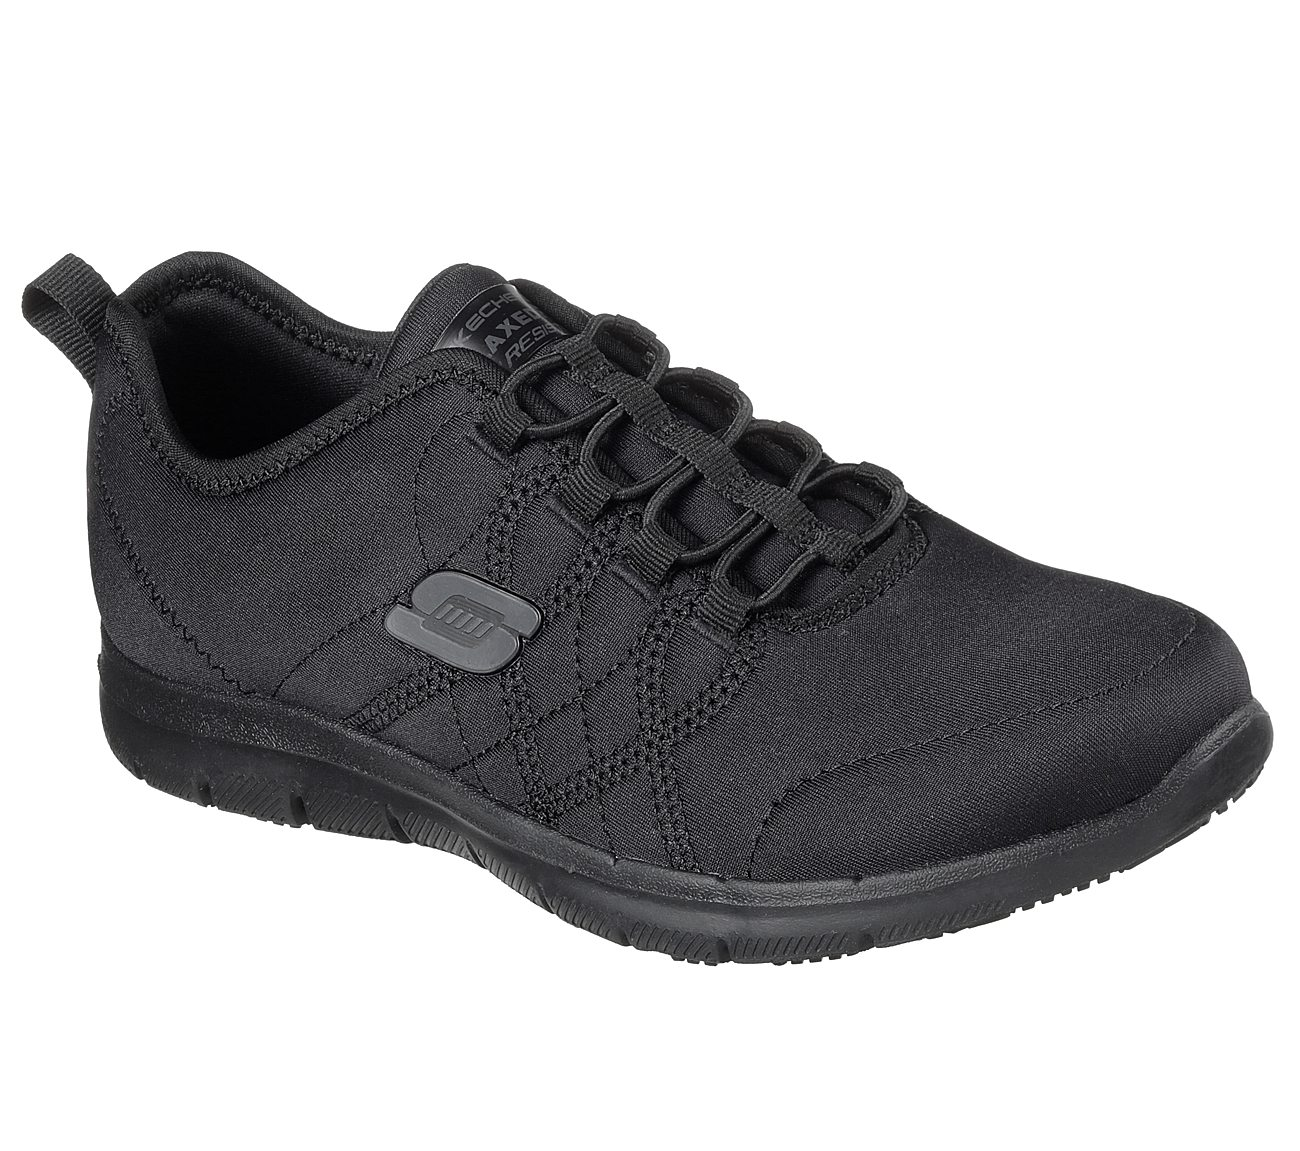 NEW SKECHERS WOMENS WORK RELAXED FIT GHENTER SRELT SR SNEAKER